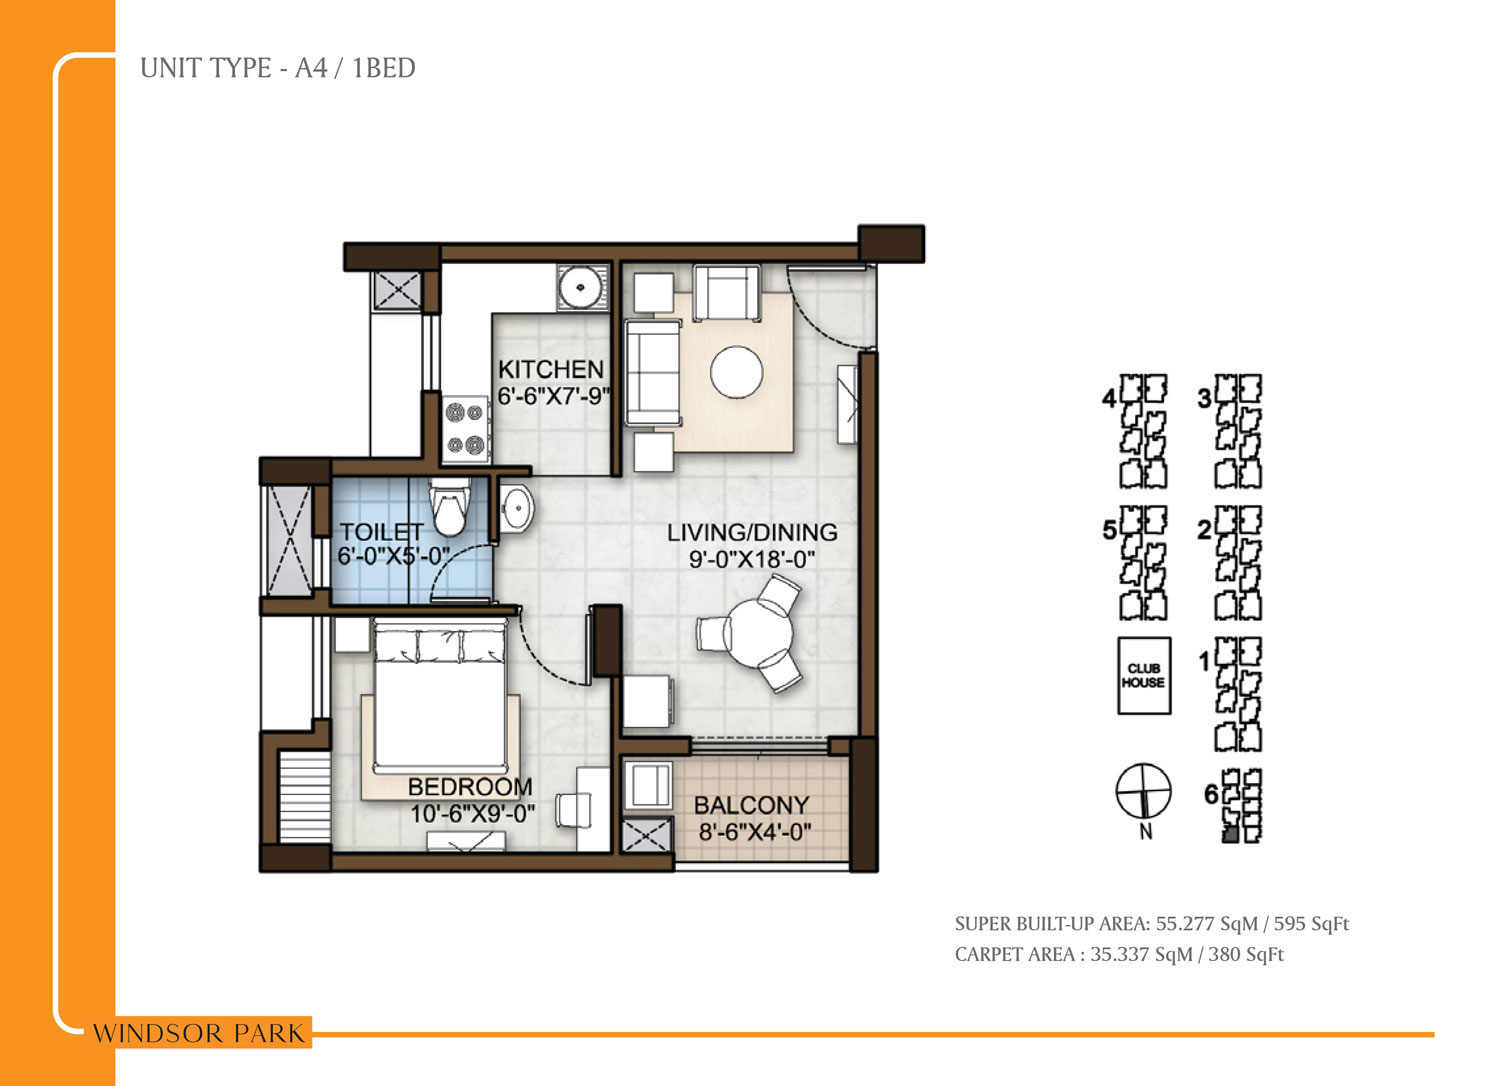 Type A4 - 595 Sq Ft